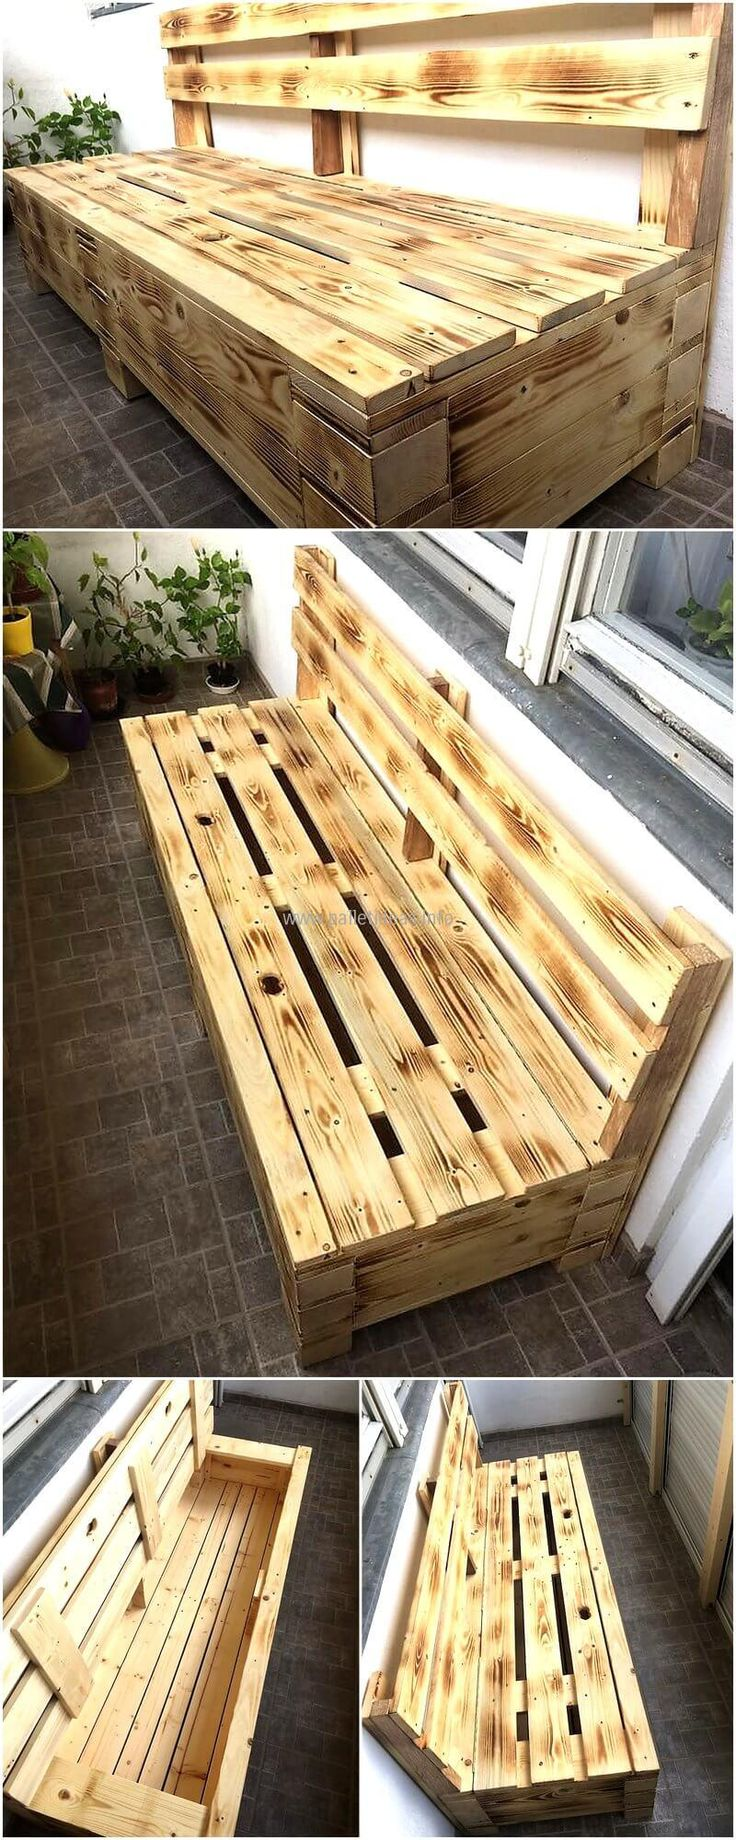 Bench is a furniture piece that is used for sitting and most of the people think that it can only be used for the seating purpose, but it's not like that as it can be turned into a storage area as well. We are going to show an idea here with which a bench can not only be utilized for sitting, but can also be used for storing the items that are often used in the area where that bench is set. Have a look at the recycled wood pallet bench and decide whether it will fulfill your requirement.